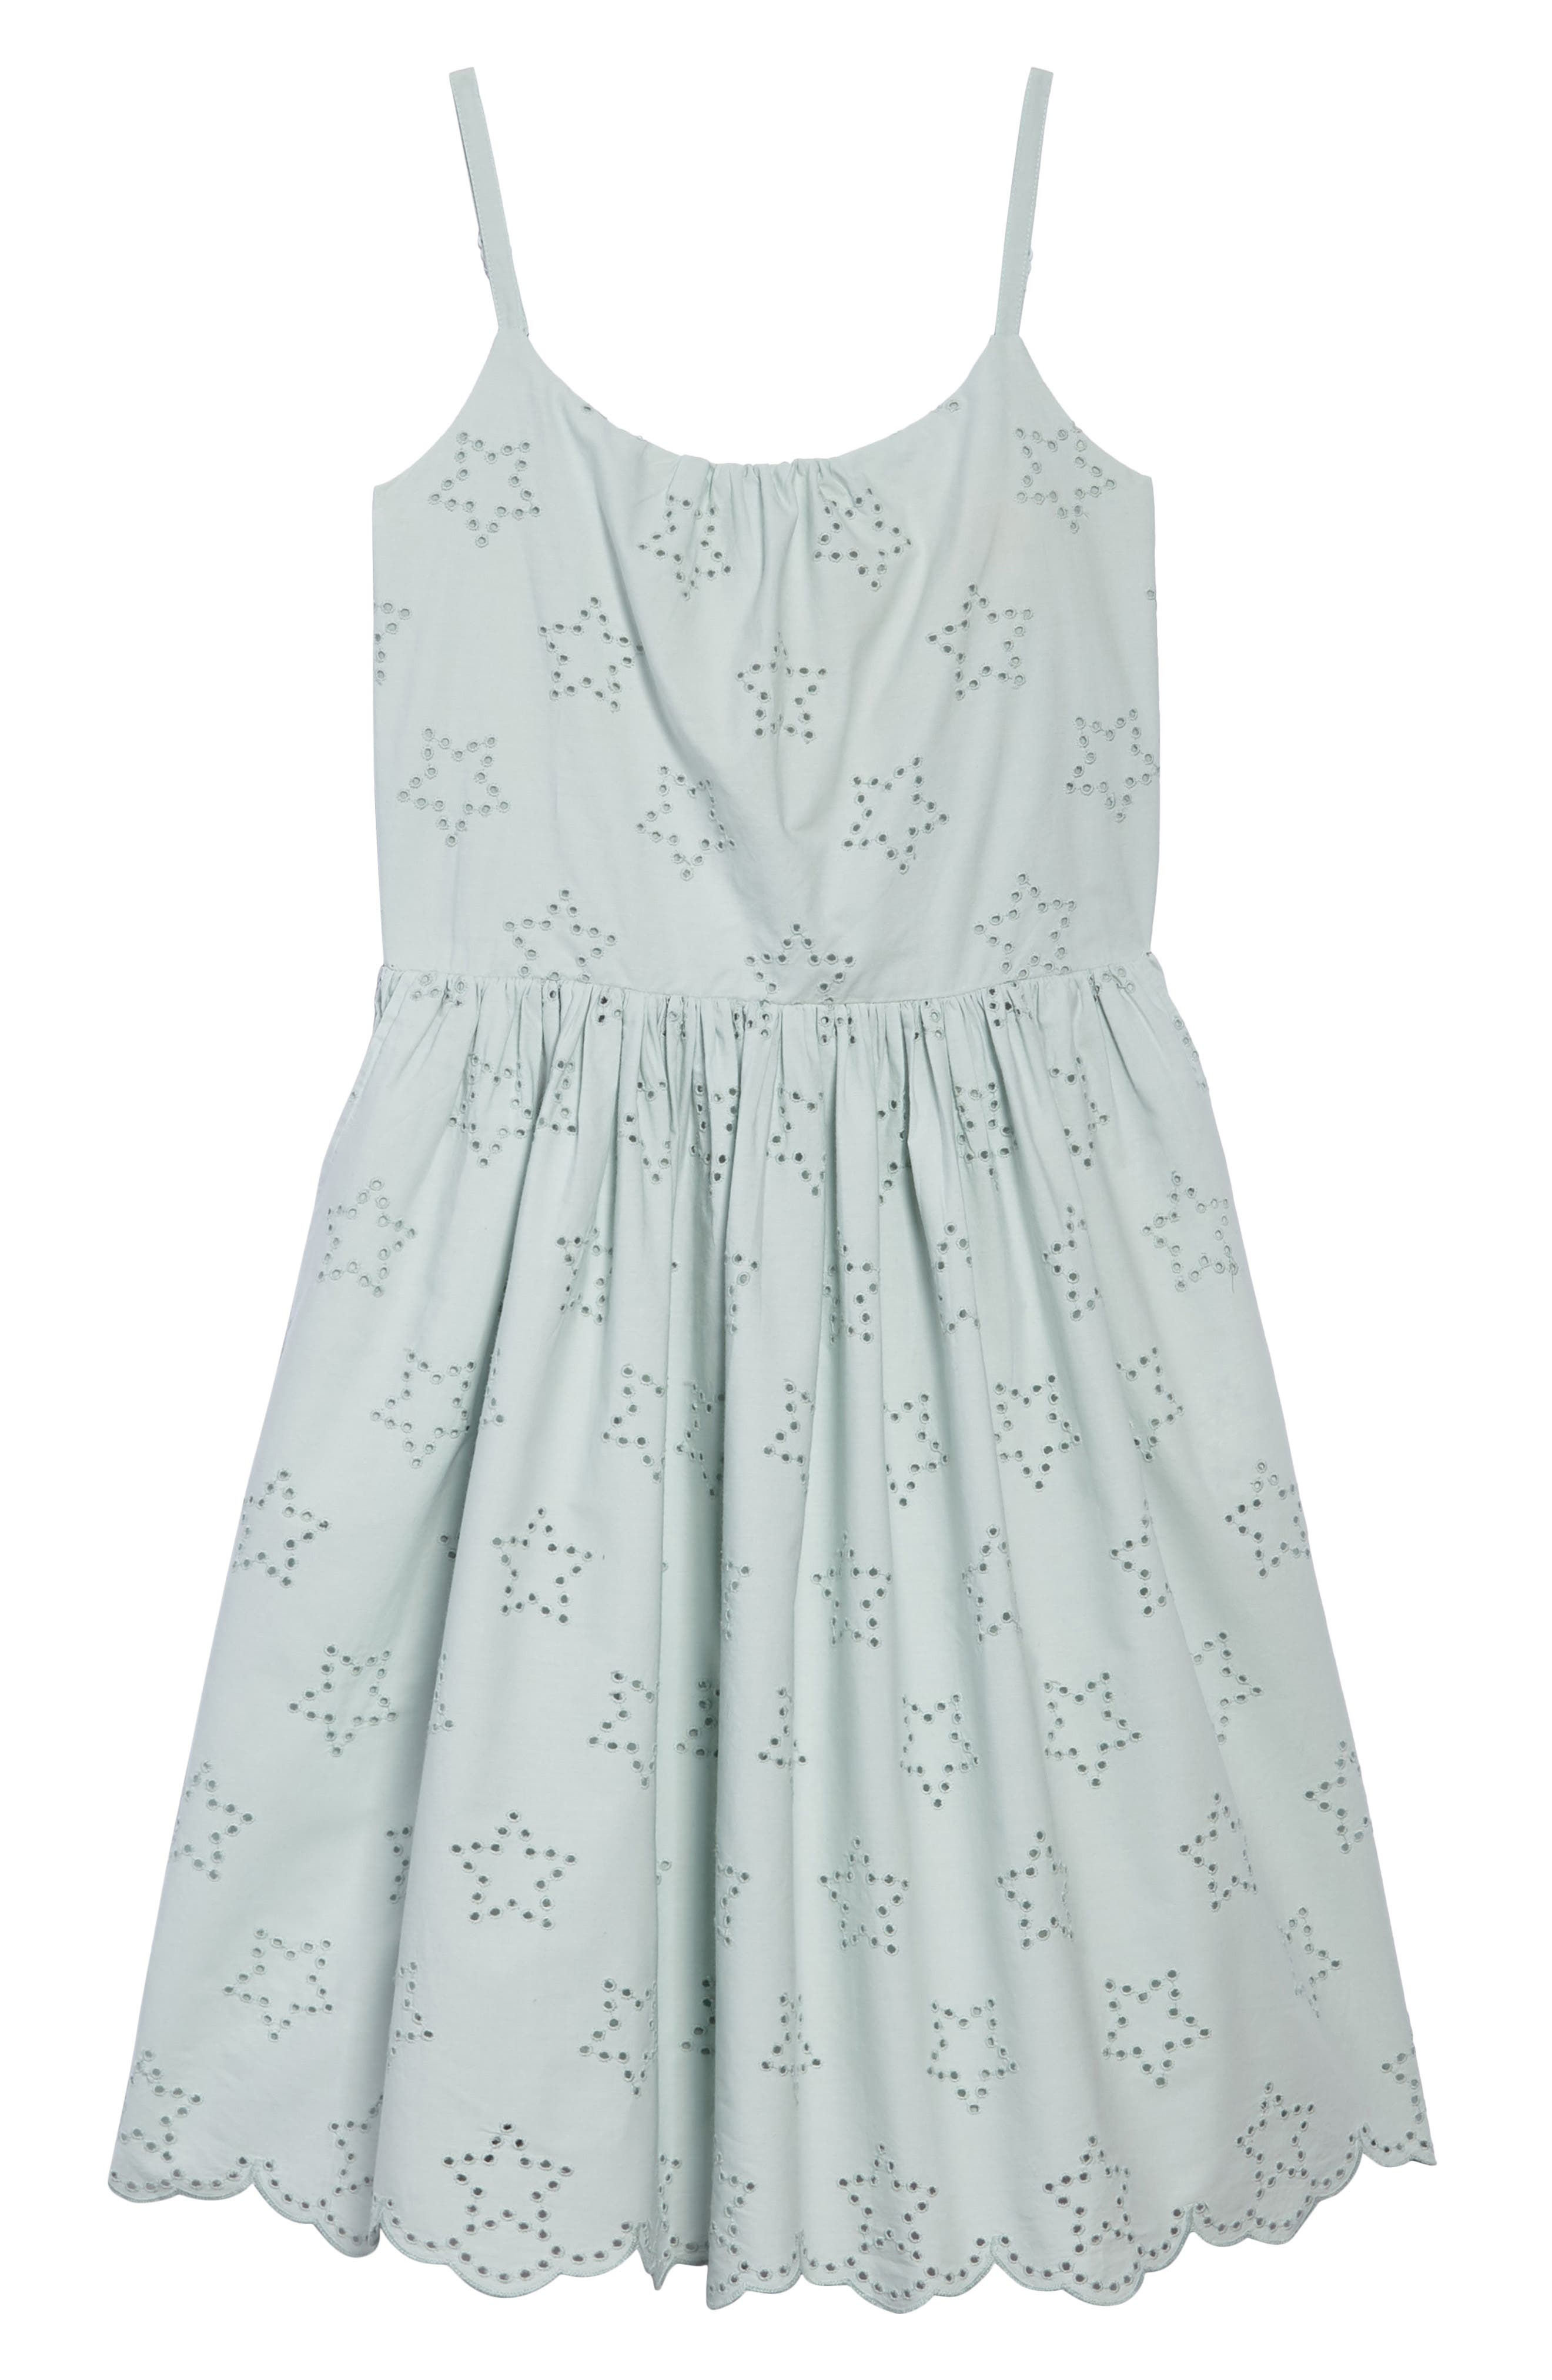 MINI BODEN Embroidered Star Sundress, Main, color, 454